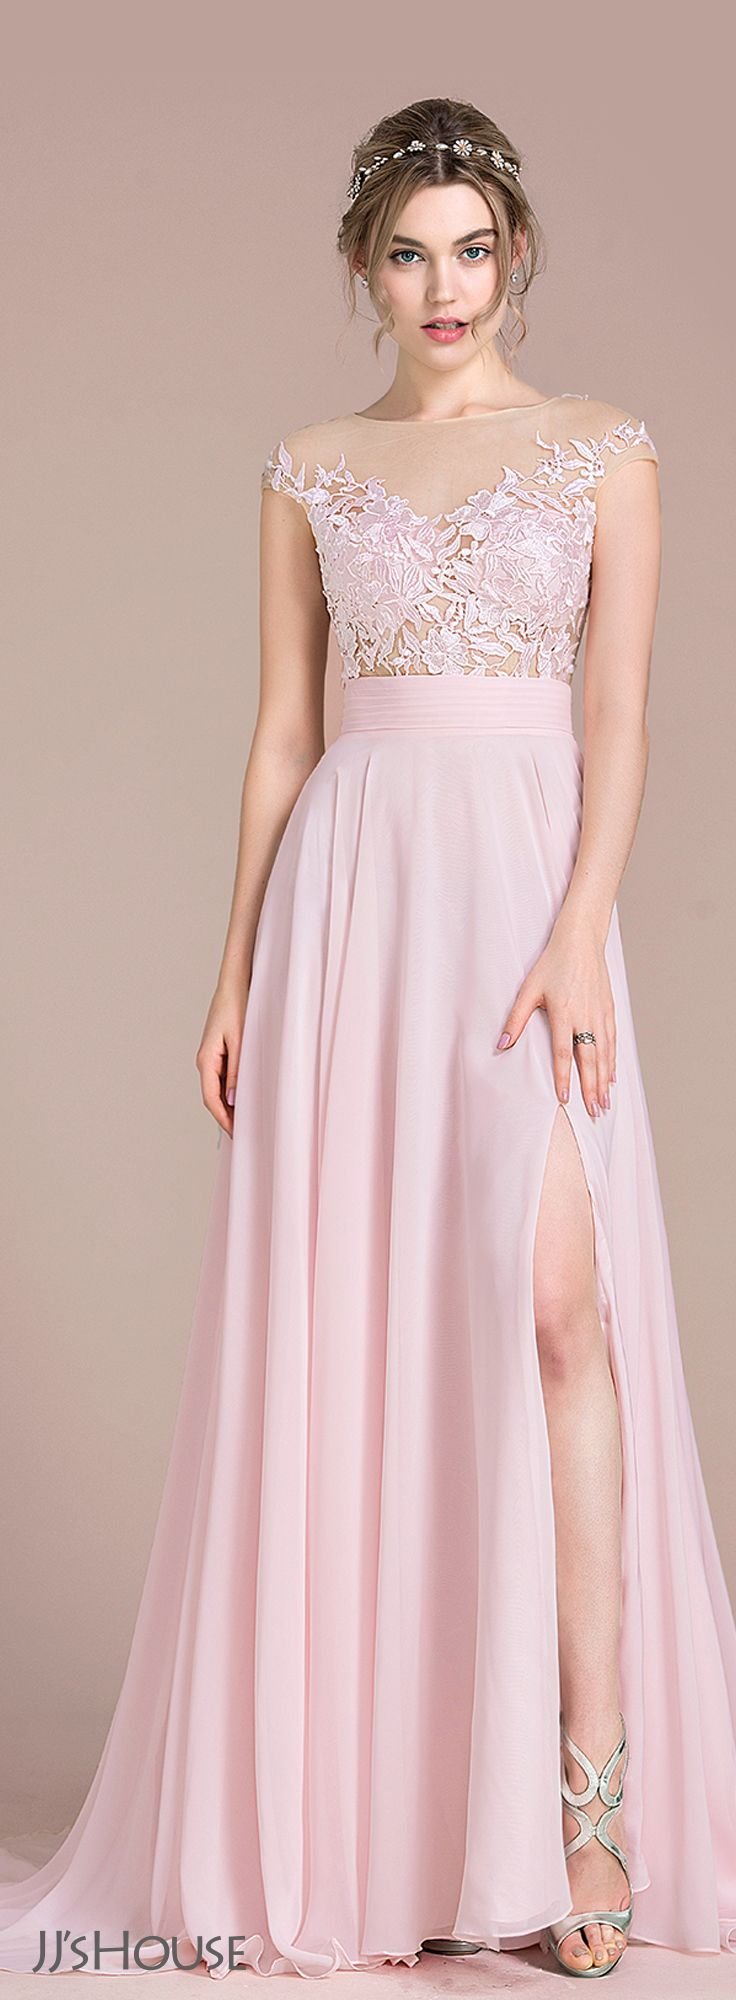 A-Line/Princess Scoop Neck Sweep Train Chiffon Prom Dresses With ...